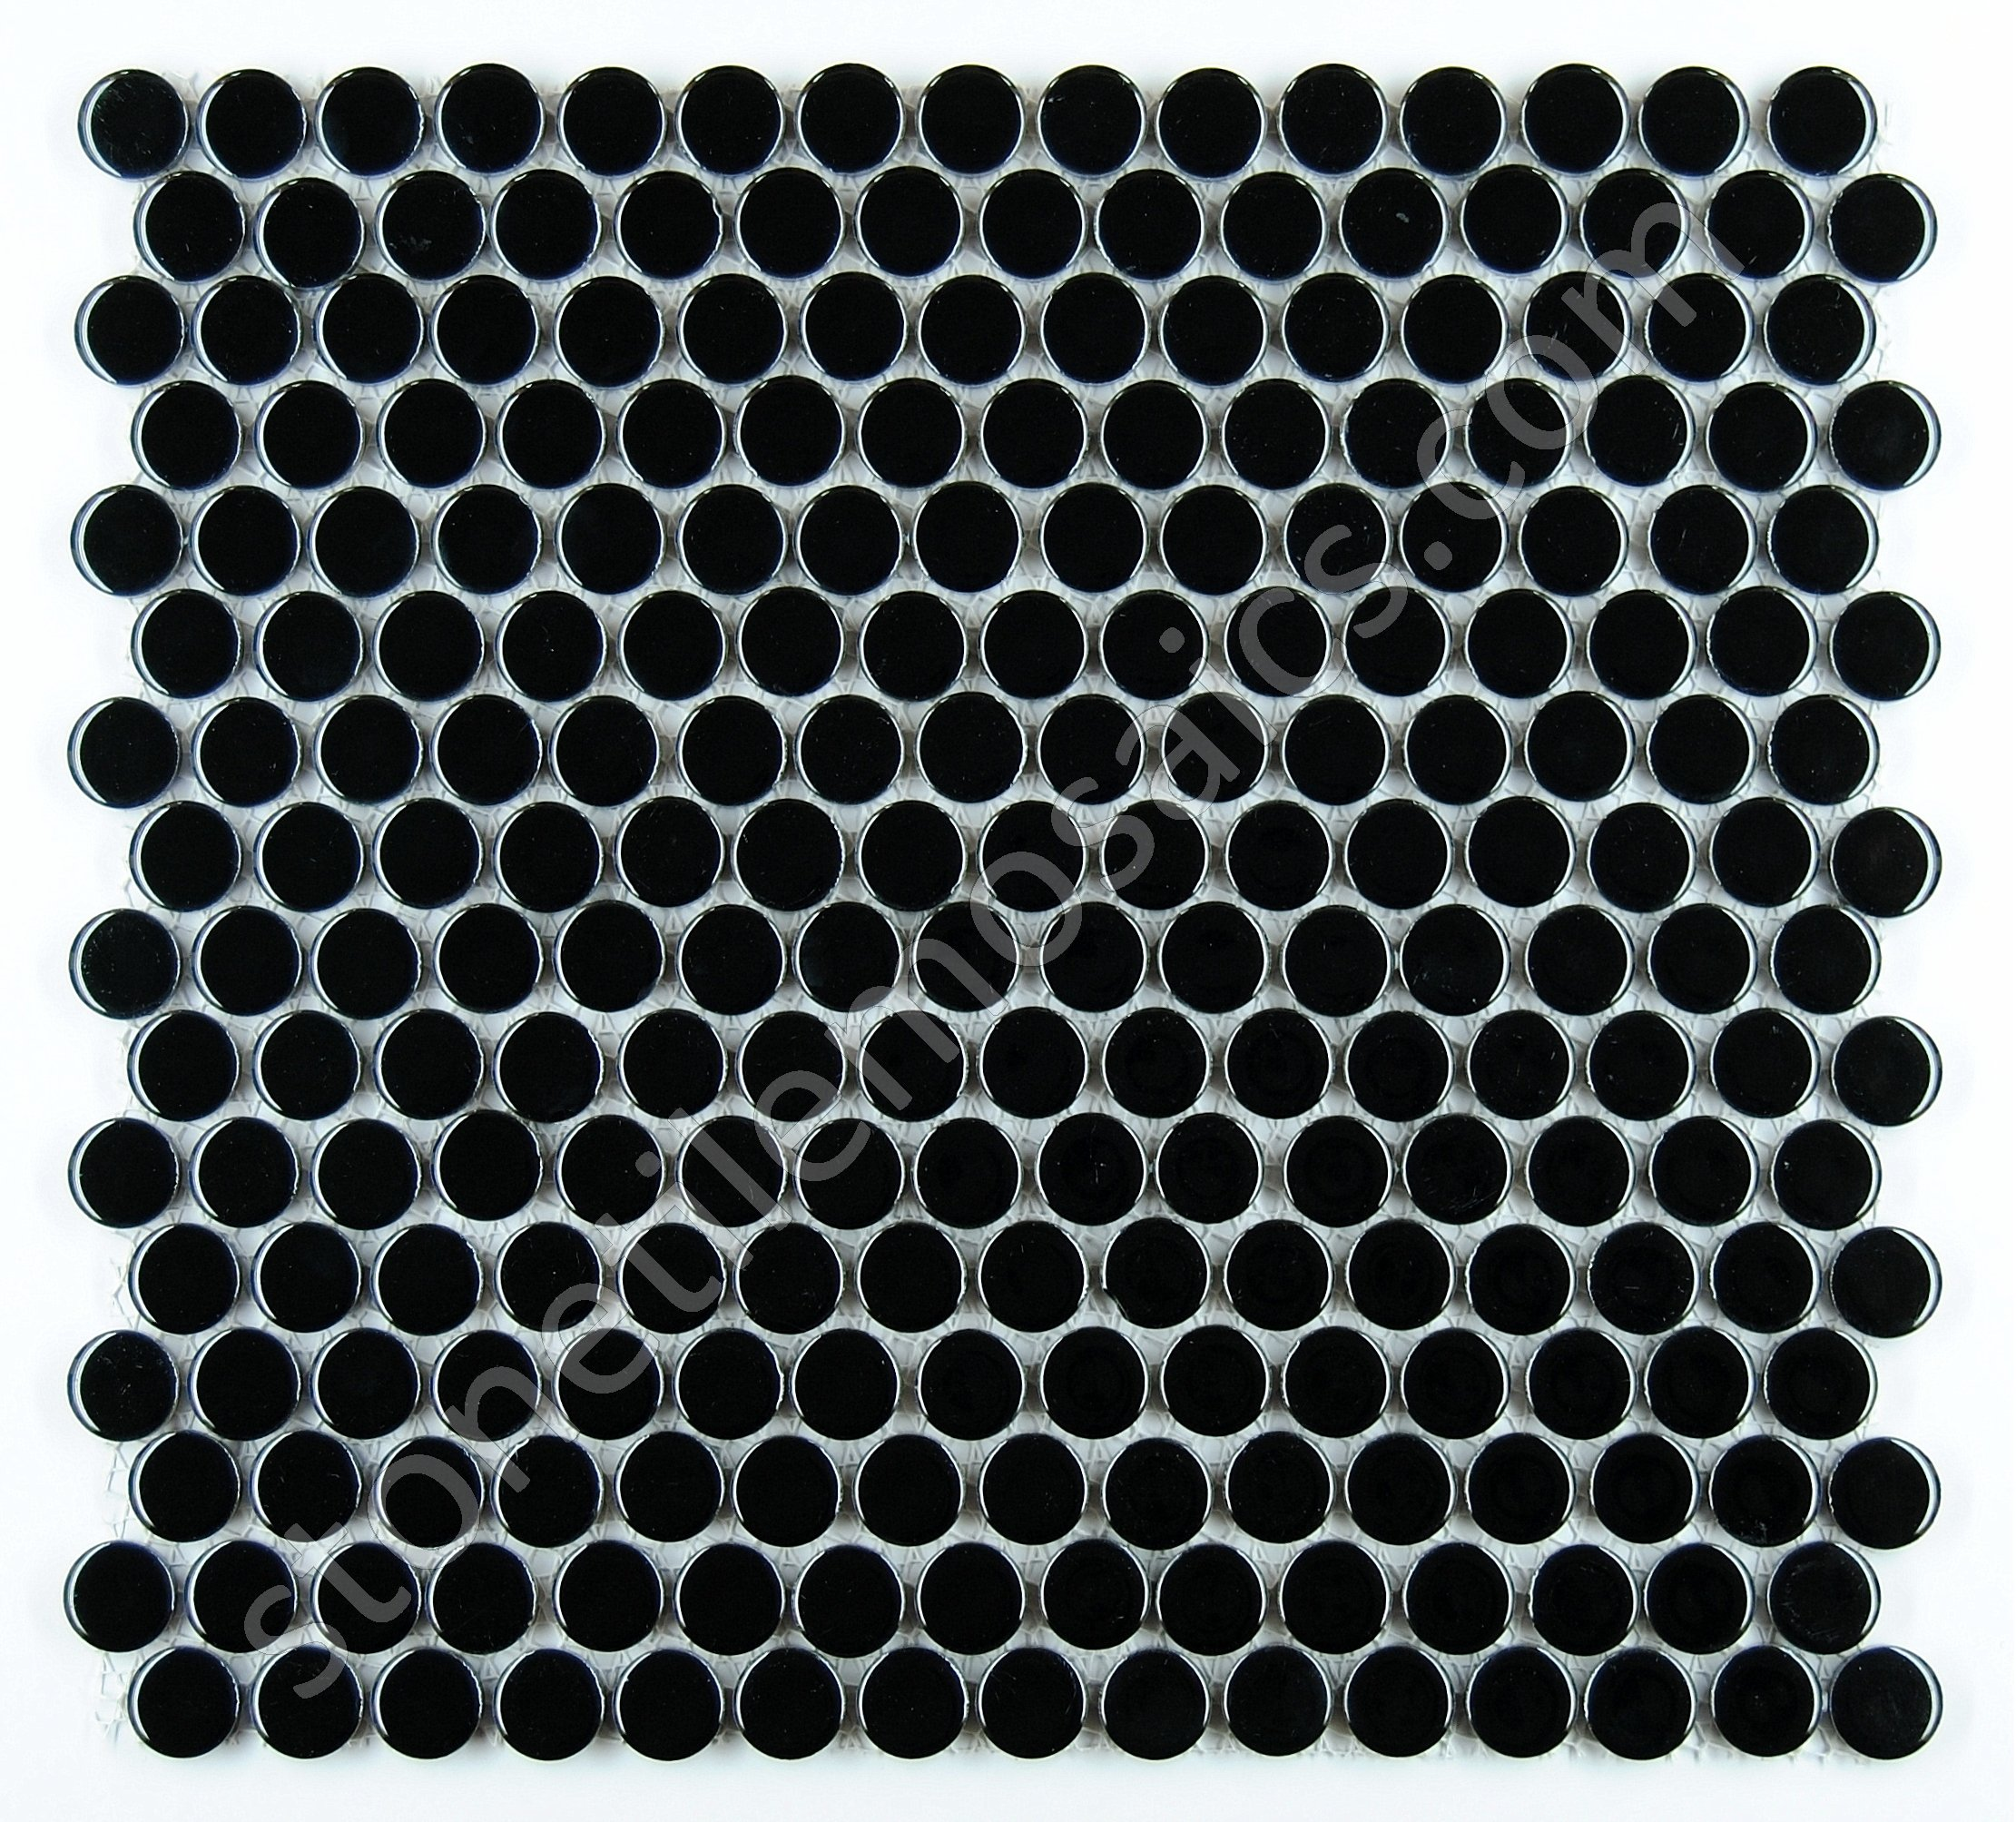 Penny Round Tile Black Porcelain Mosaic Shiny Look (Box of 5.1 Sq Ft)